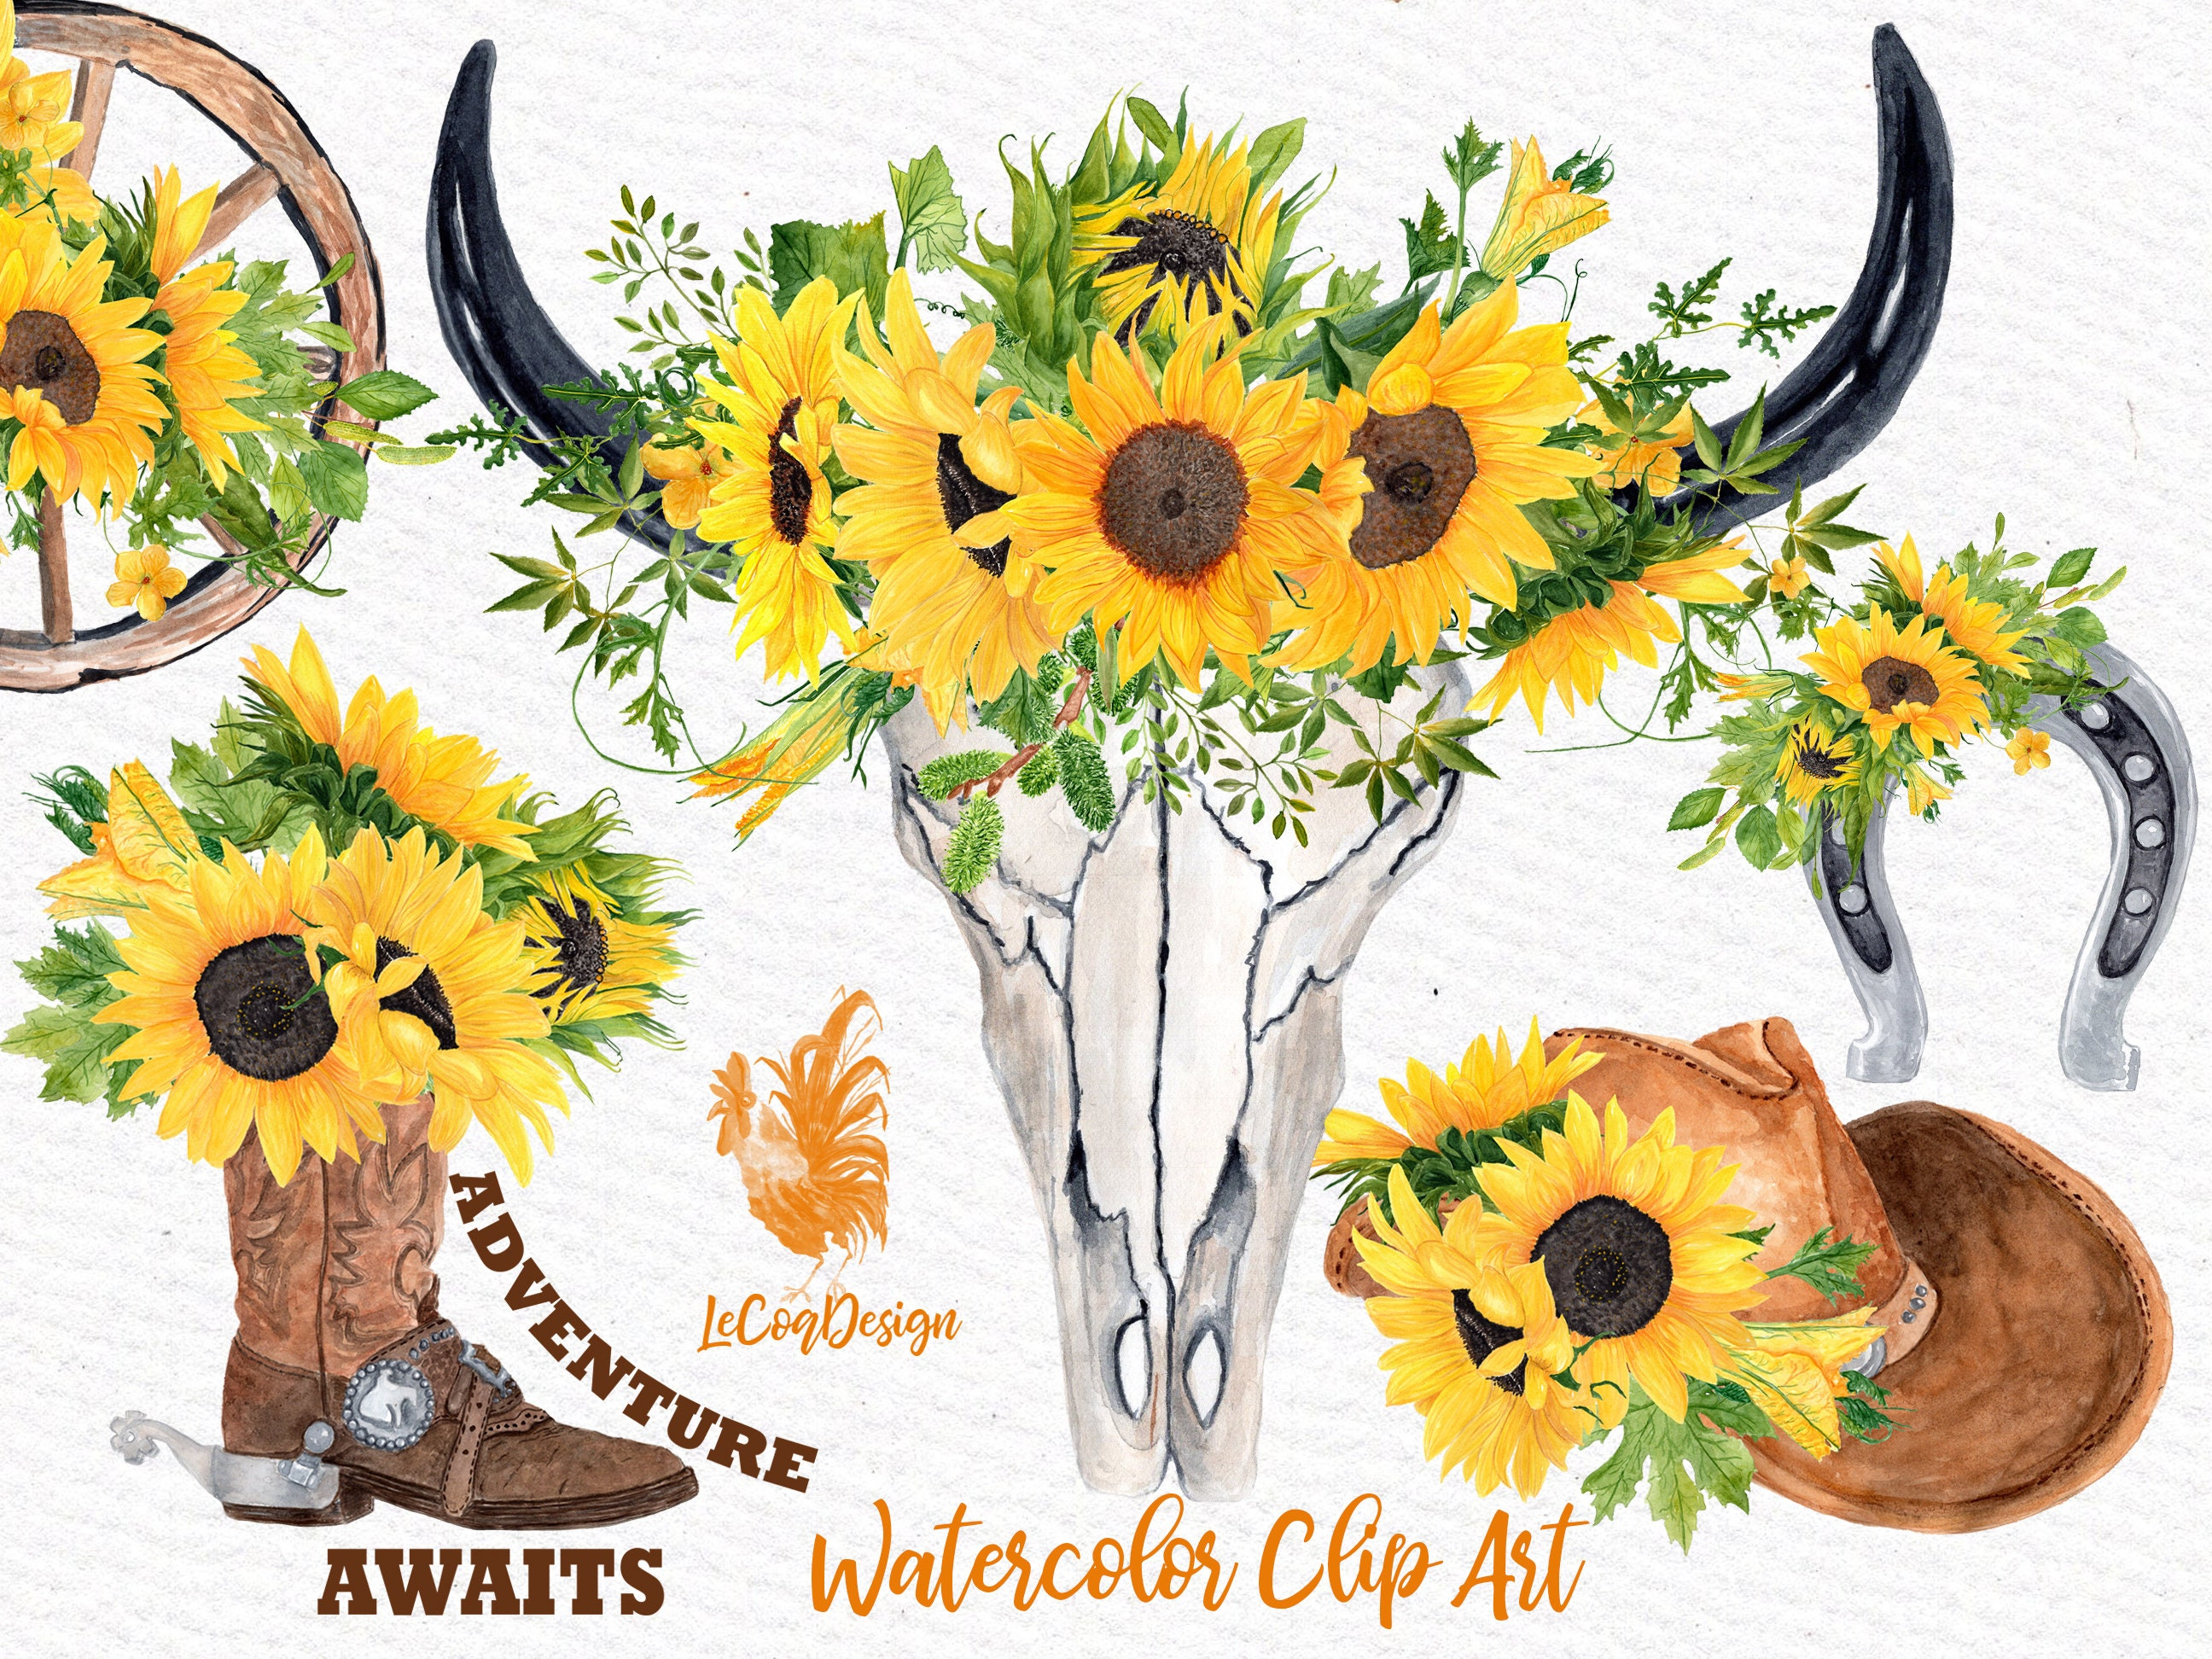 Sunflower Clipart: WESTERN SLIPART Cowboy clipart | Etsy